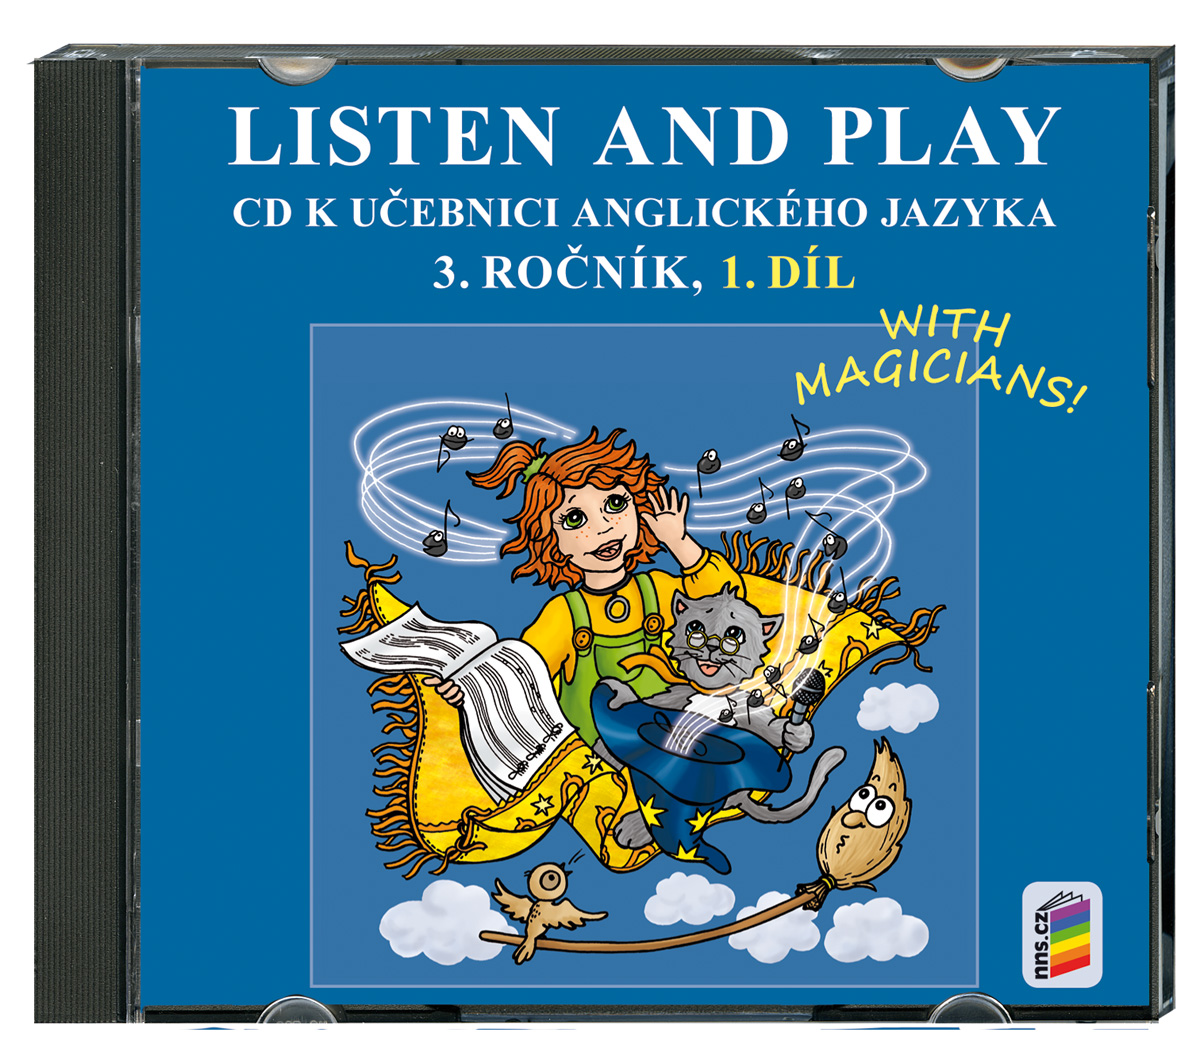 CD LISTEN AND PLAY With magicians! 1. díl